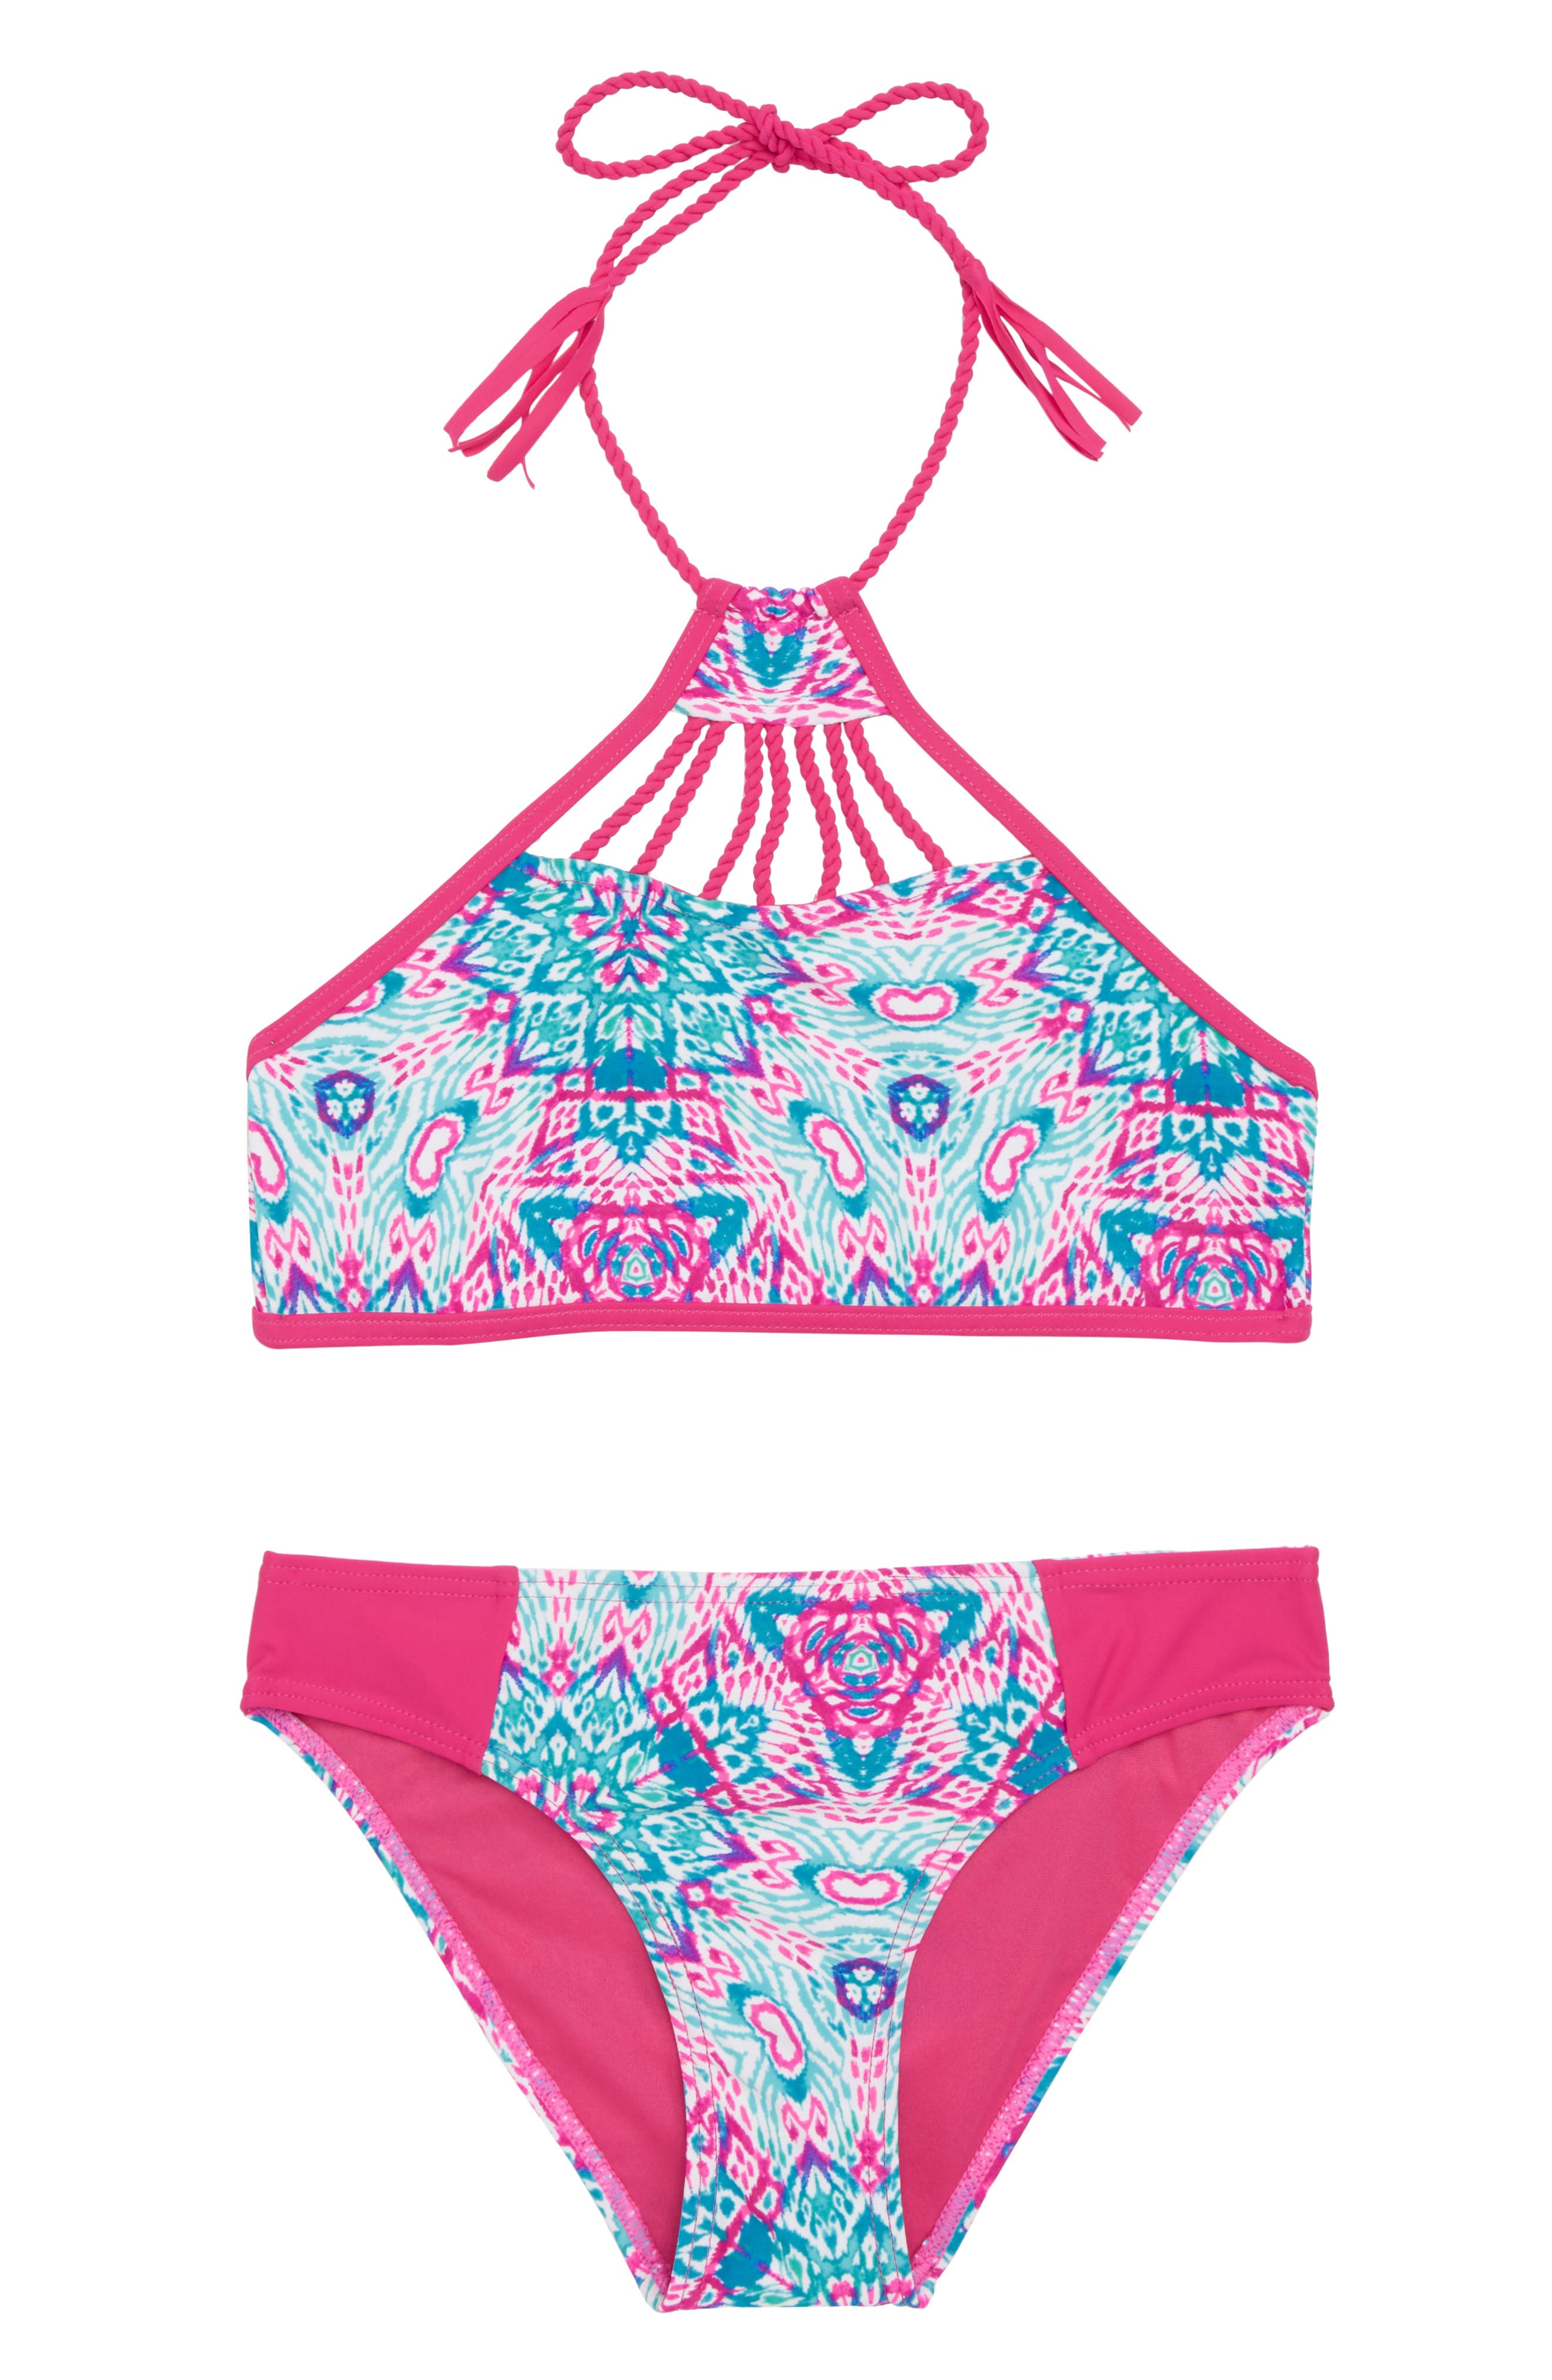 Braided Detail Two-Piece Swimsuit,                         Main,                         color,